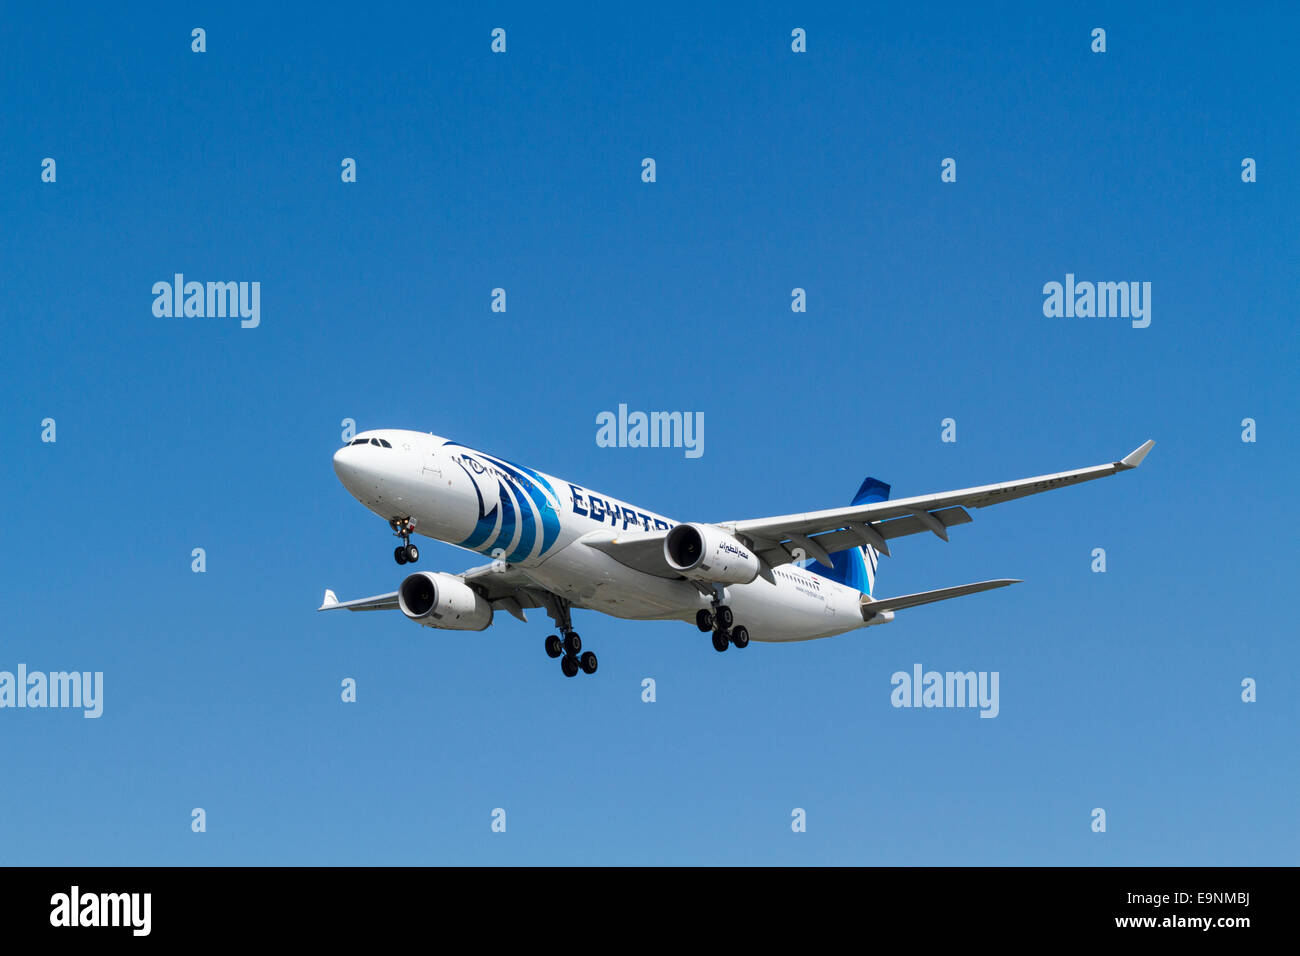 EgyptAir Airbus A320-200 on its approach for landing at London Heathrow, England, UK - Stock Image